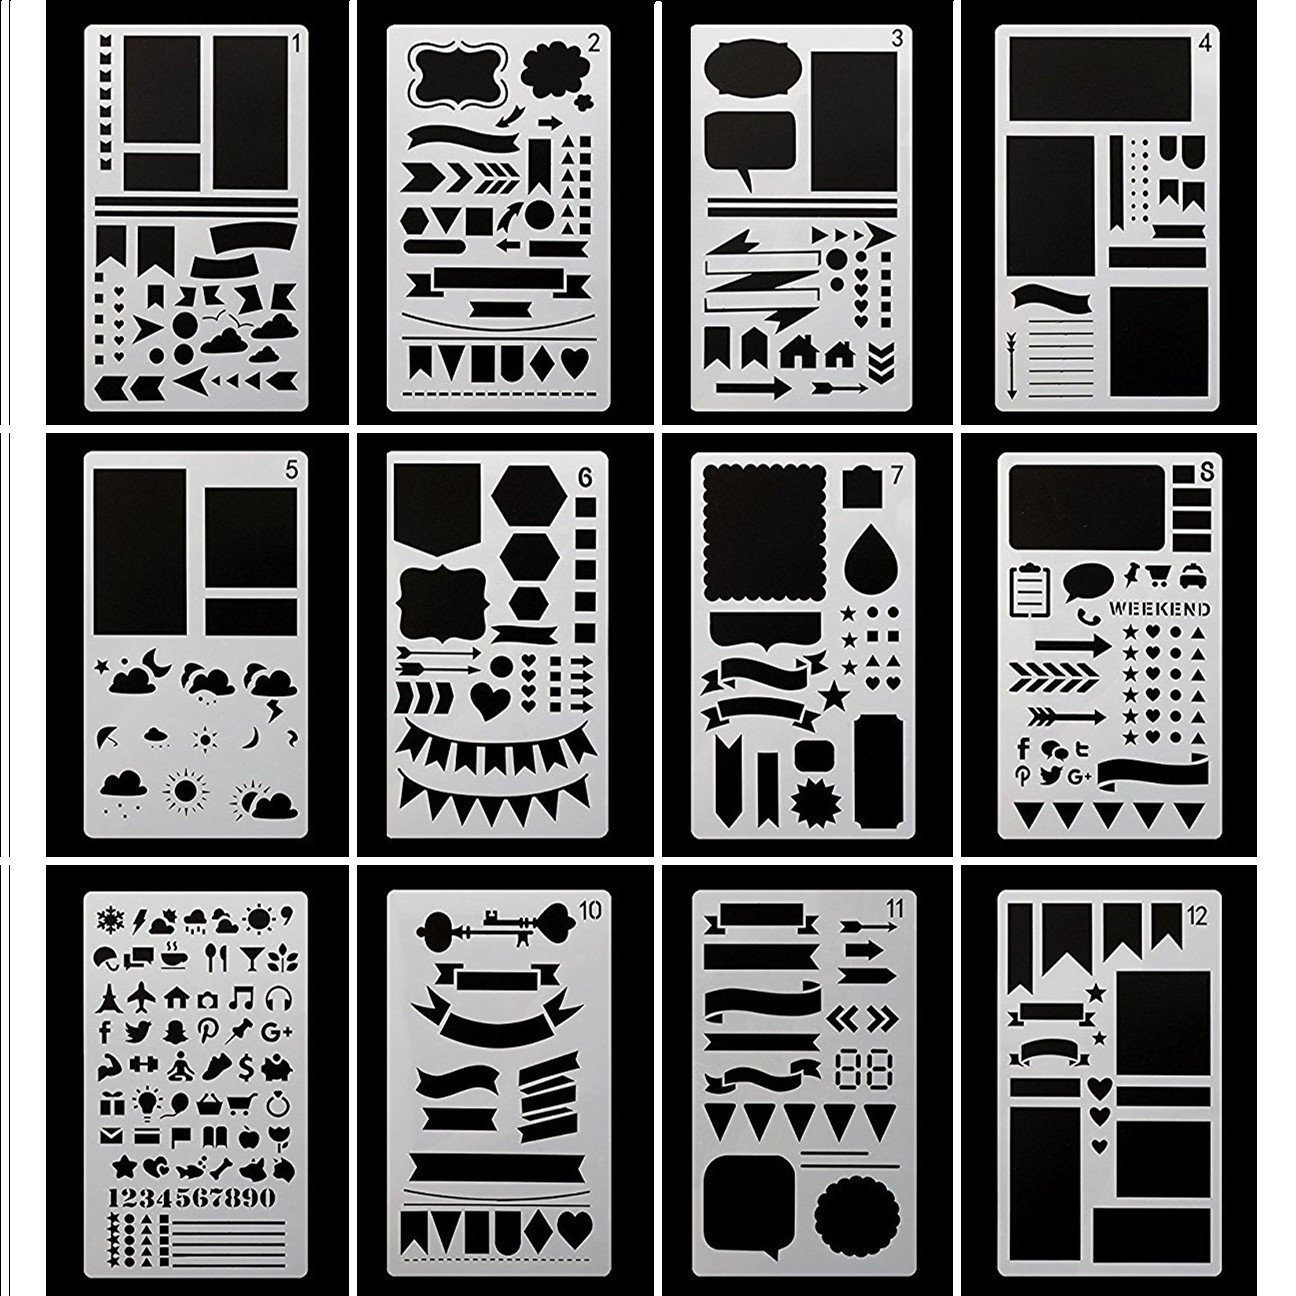 Bullet Journal Stencil, Gookit 12 Packs Plastic Journal Stencil Painting Shapes Letter Journaling Set DIY Drawing Template Stencil 4x7 Inch